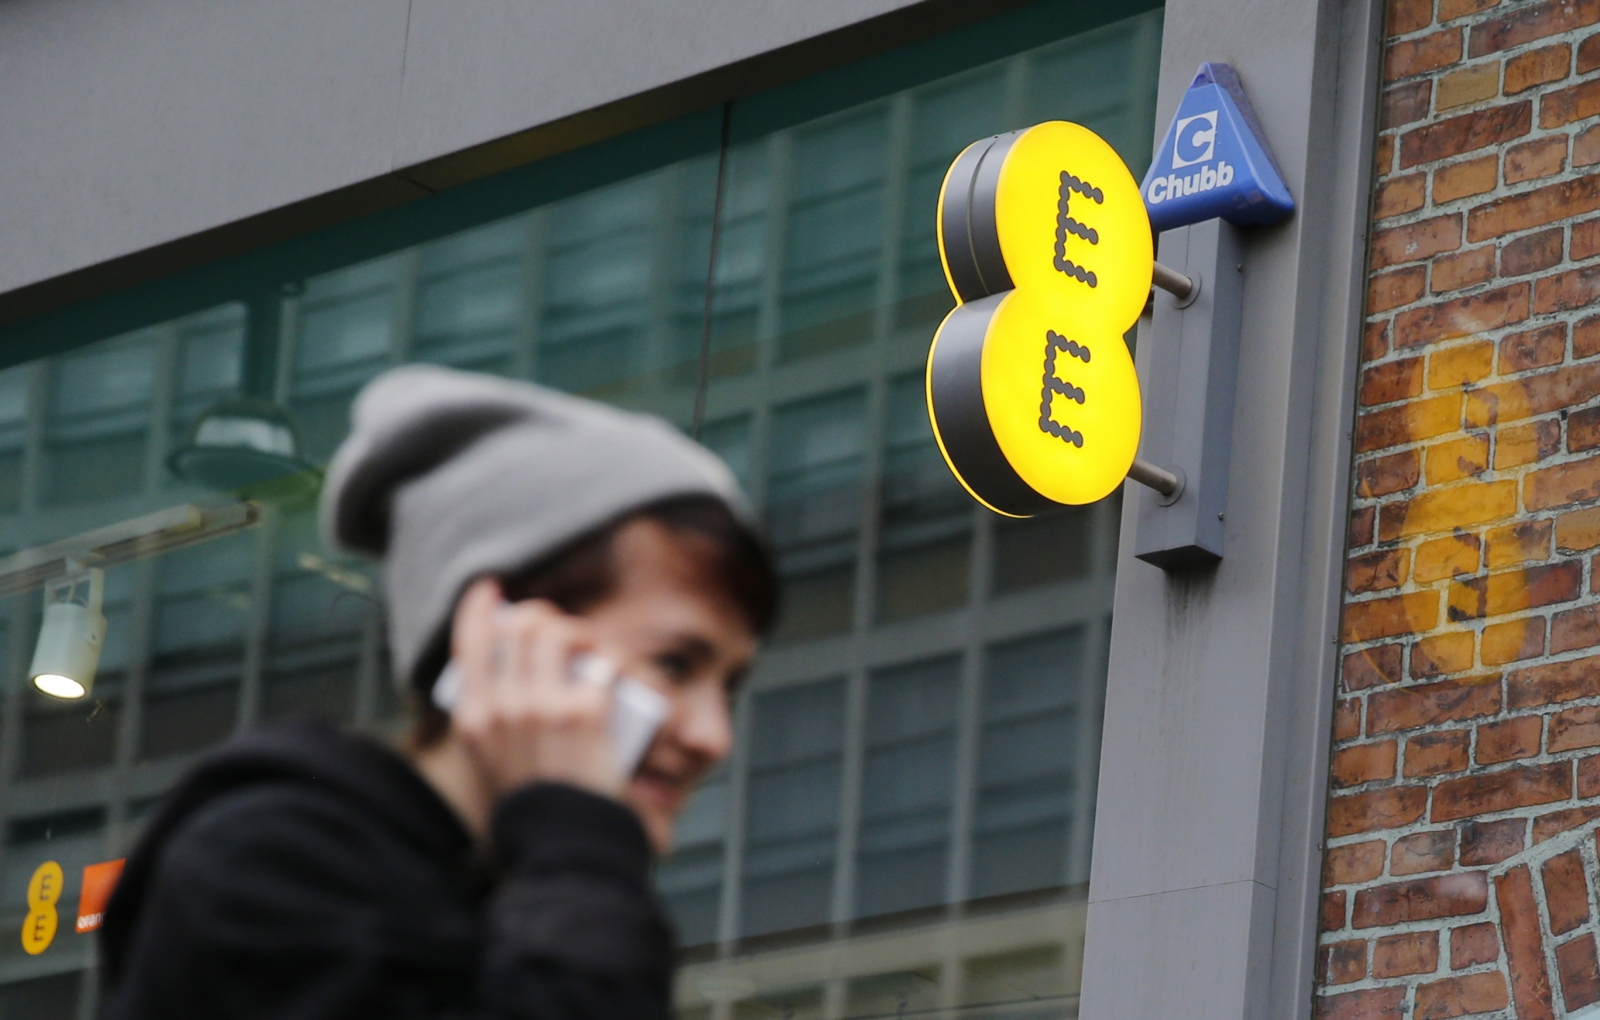 EE says network is back after 4G outage